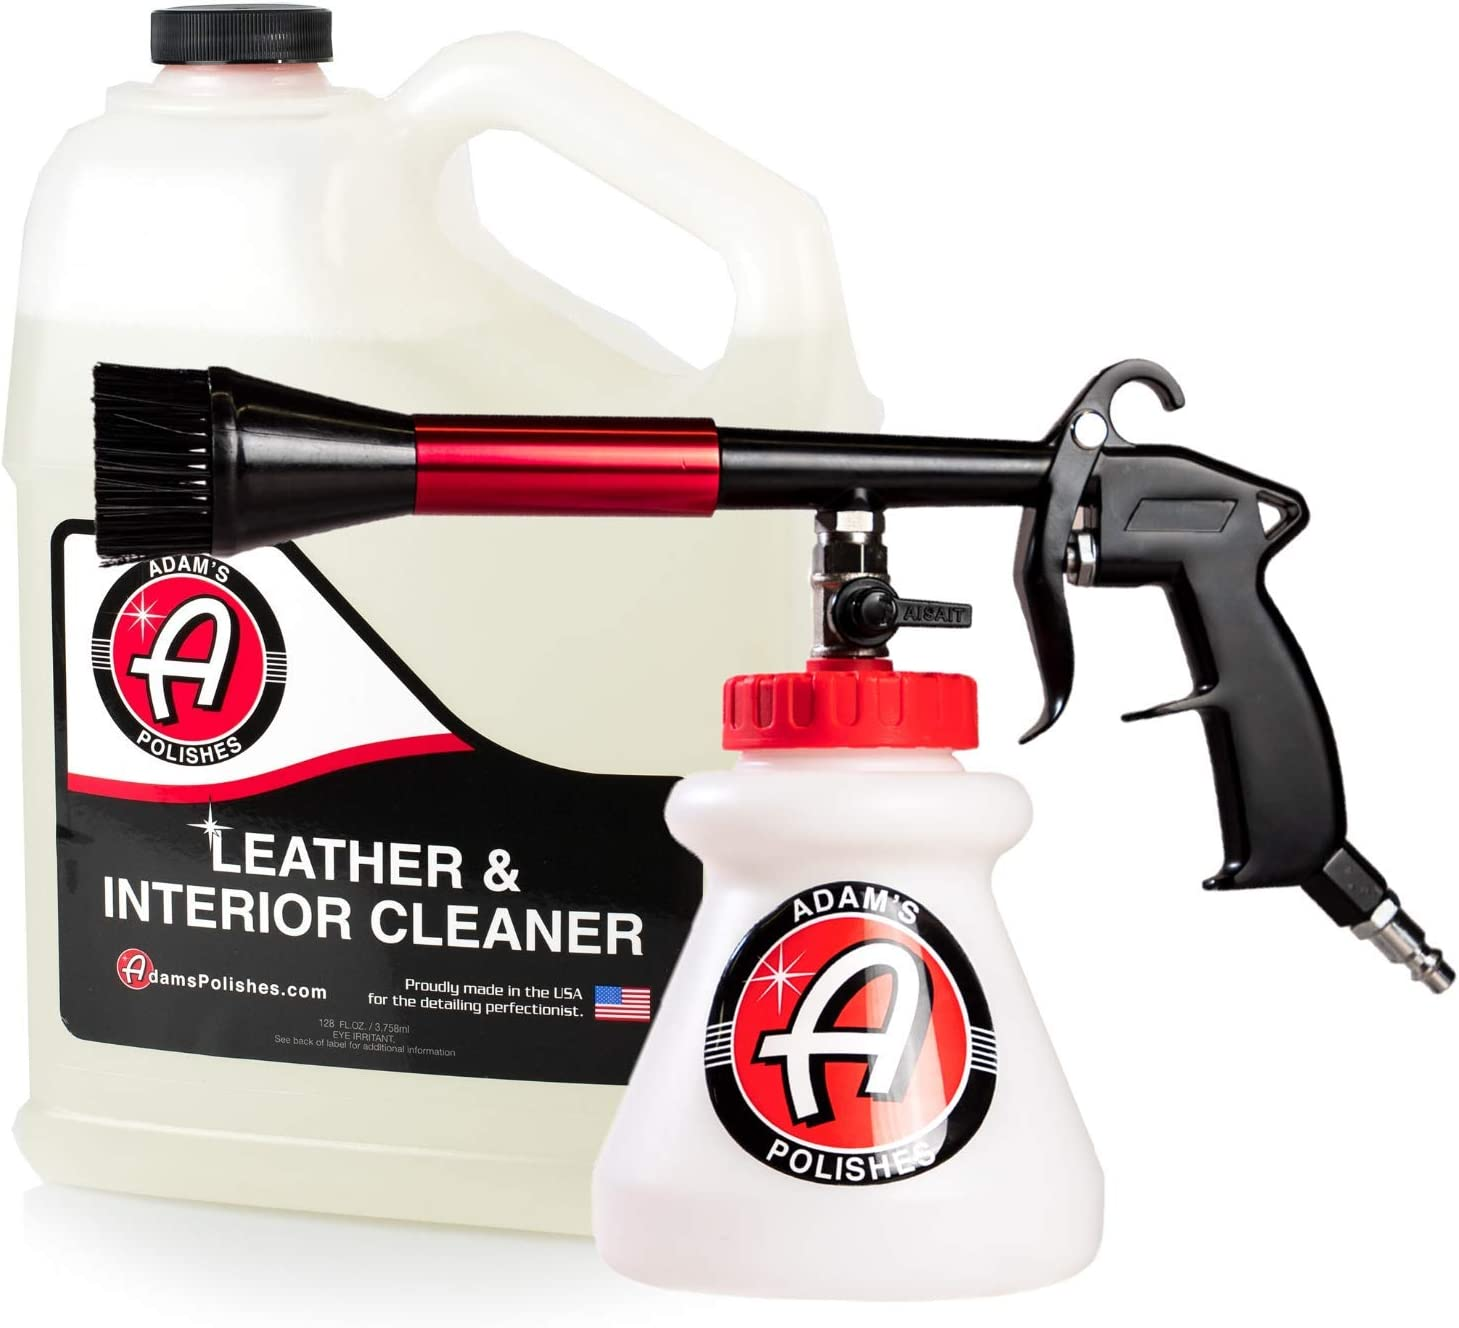 Adam's Interior Cleaning Gun - Pressurized, Compressed Air & Cleaning Solutions Deep Cleans Interior Surfaces - Cleanse Your Car Seats, Leather, Floor Mats, Carpet, Upholstery, and More (Combo)